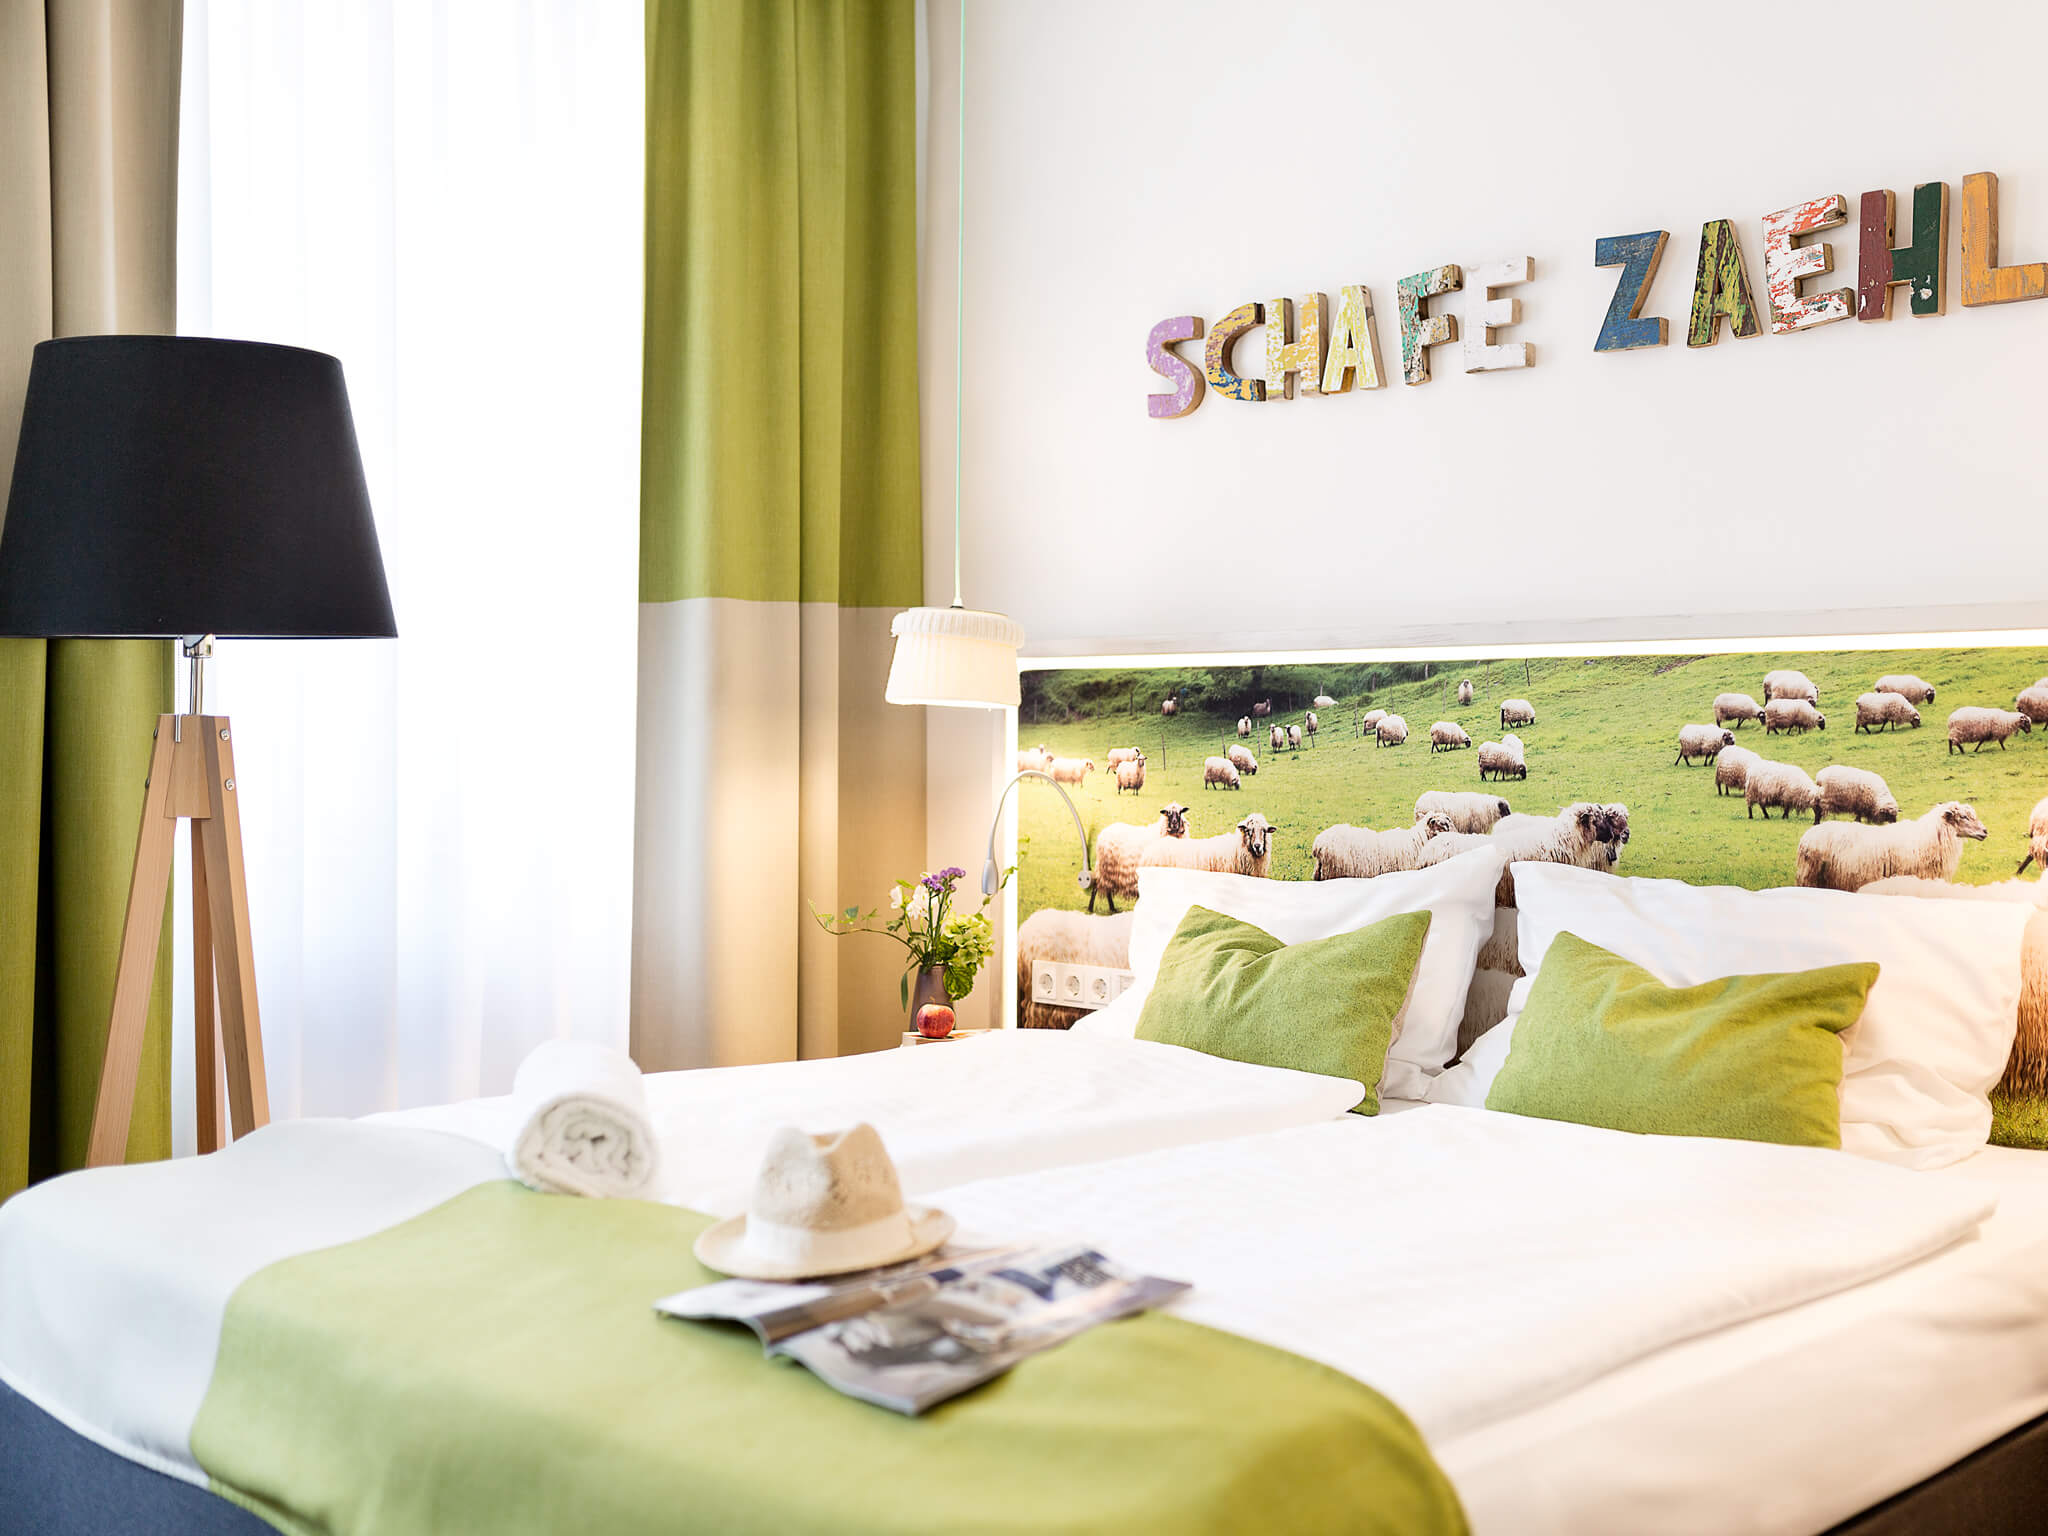 Boutiquehotel Stadthalle Familien Zimmer Upcycling Schafe z+�hlen